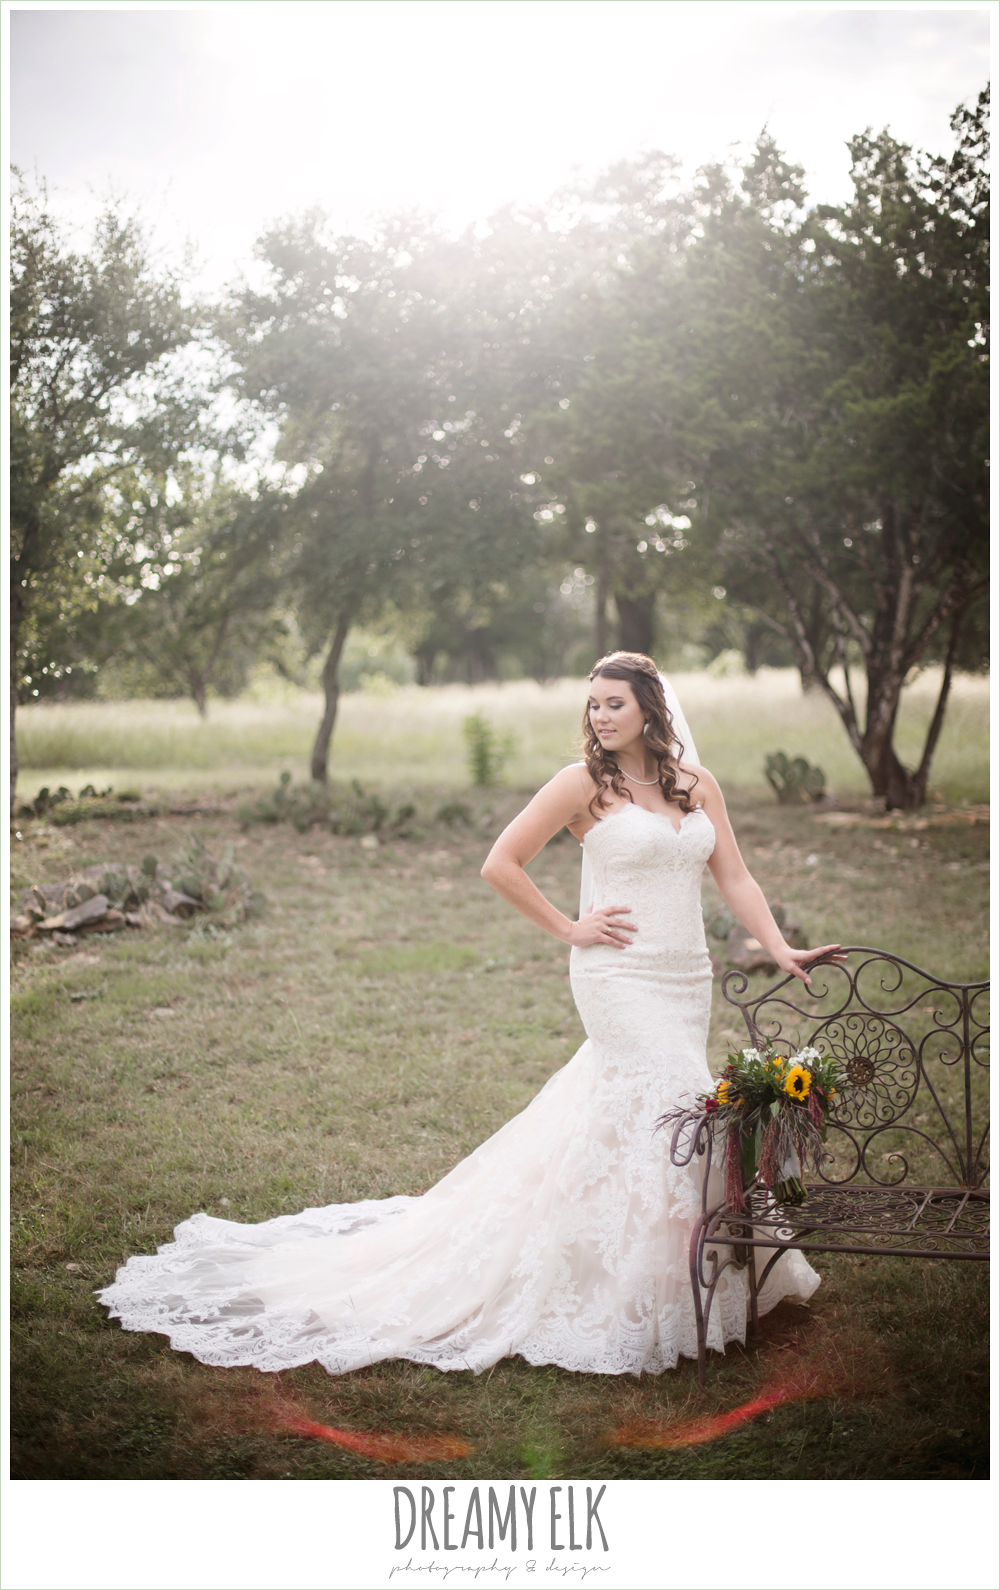 flower crown, sunflower fall bouquet, sweetheart strapless lace fit and flare wedding dress, wedding hair down, outdoor september bridal photo, la hacienda, dripping springs, texas {dreamy elk photography and design}